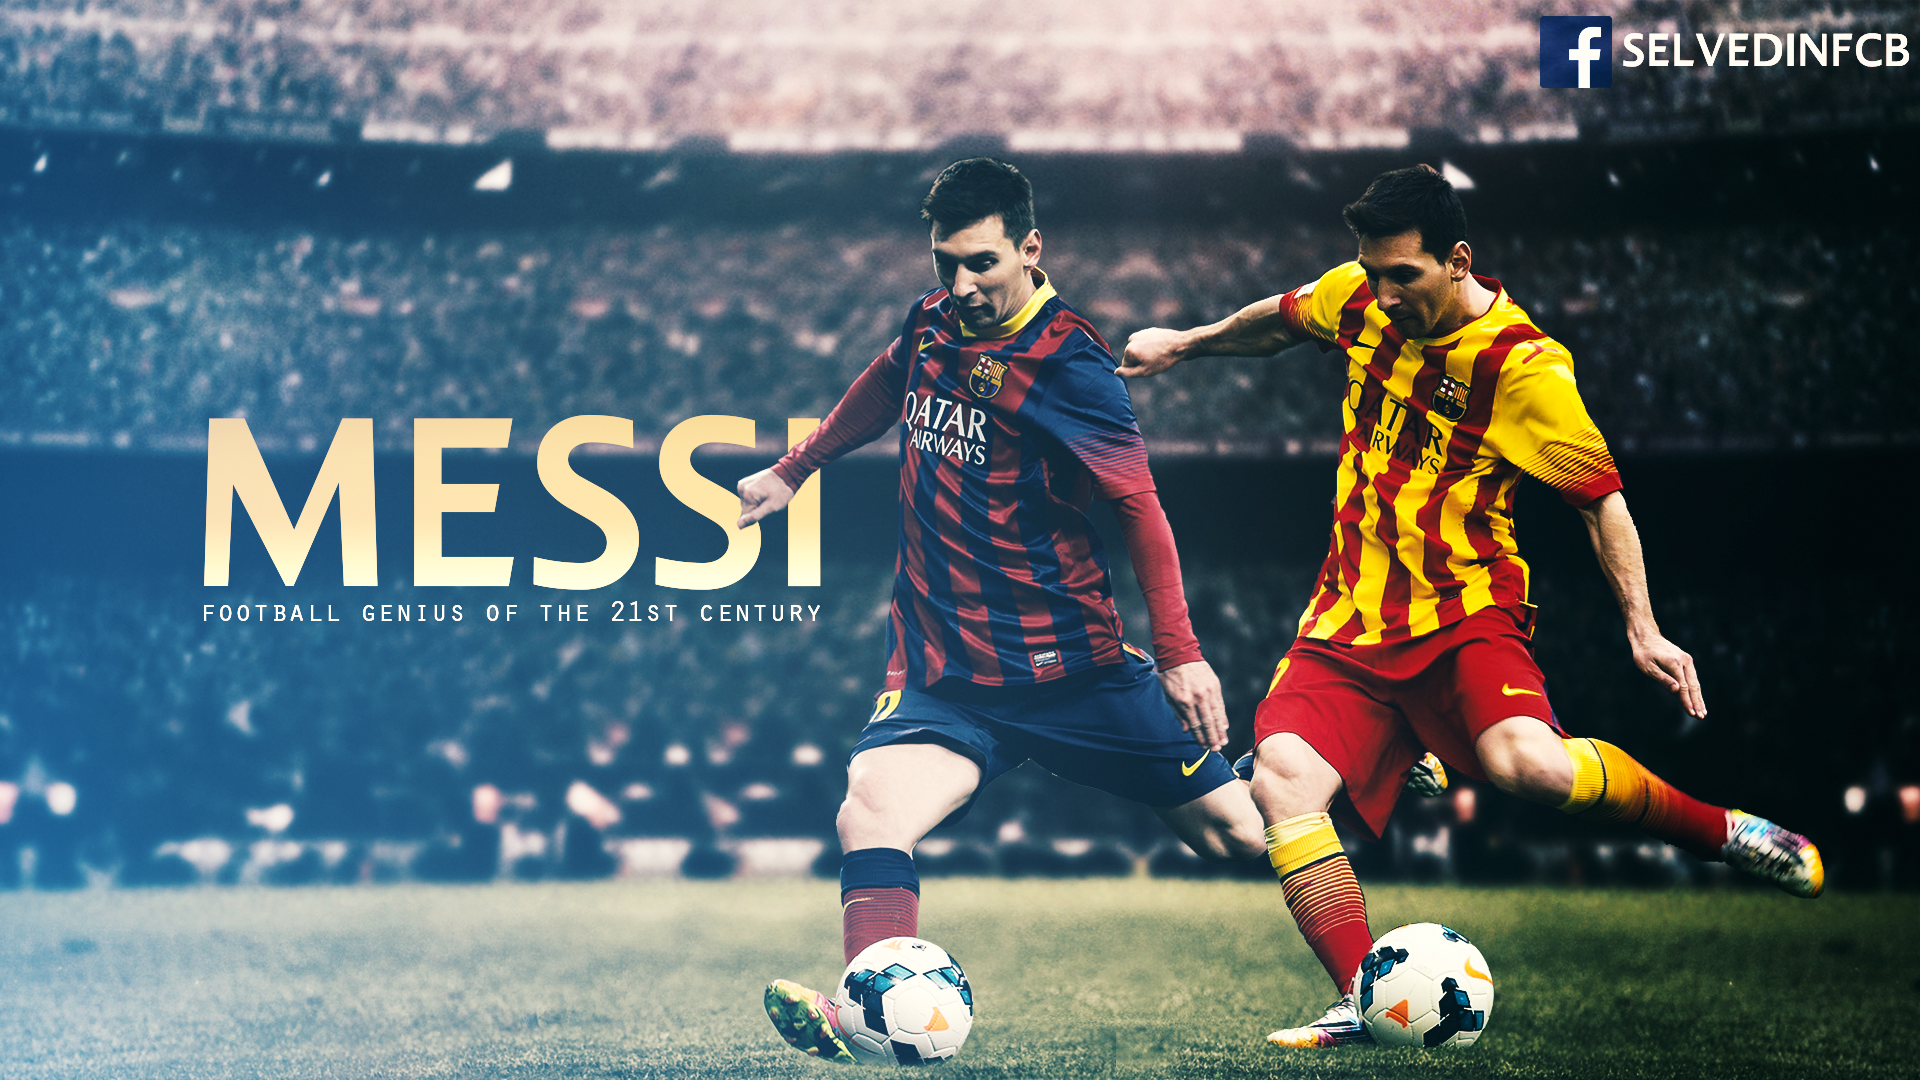 FC Barcelona Messi Neymar Suarez wallpaper 1920x1080